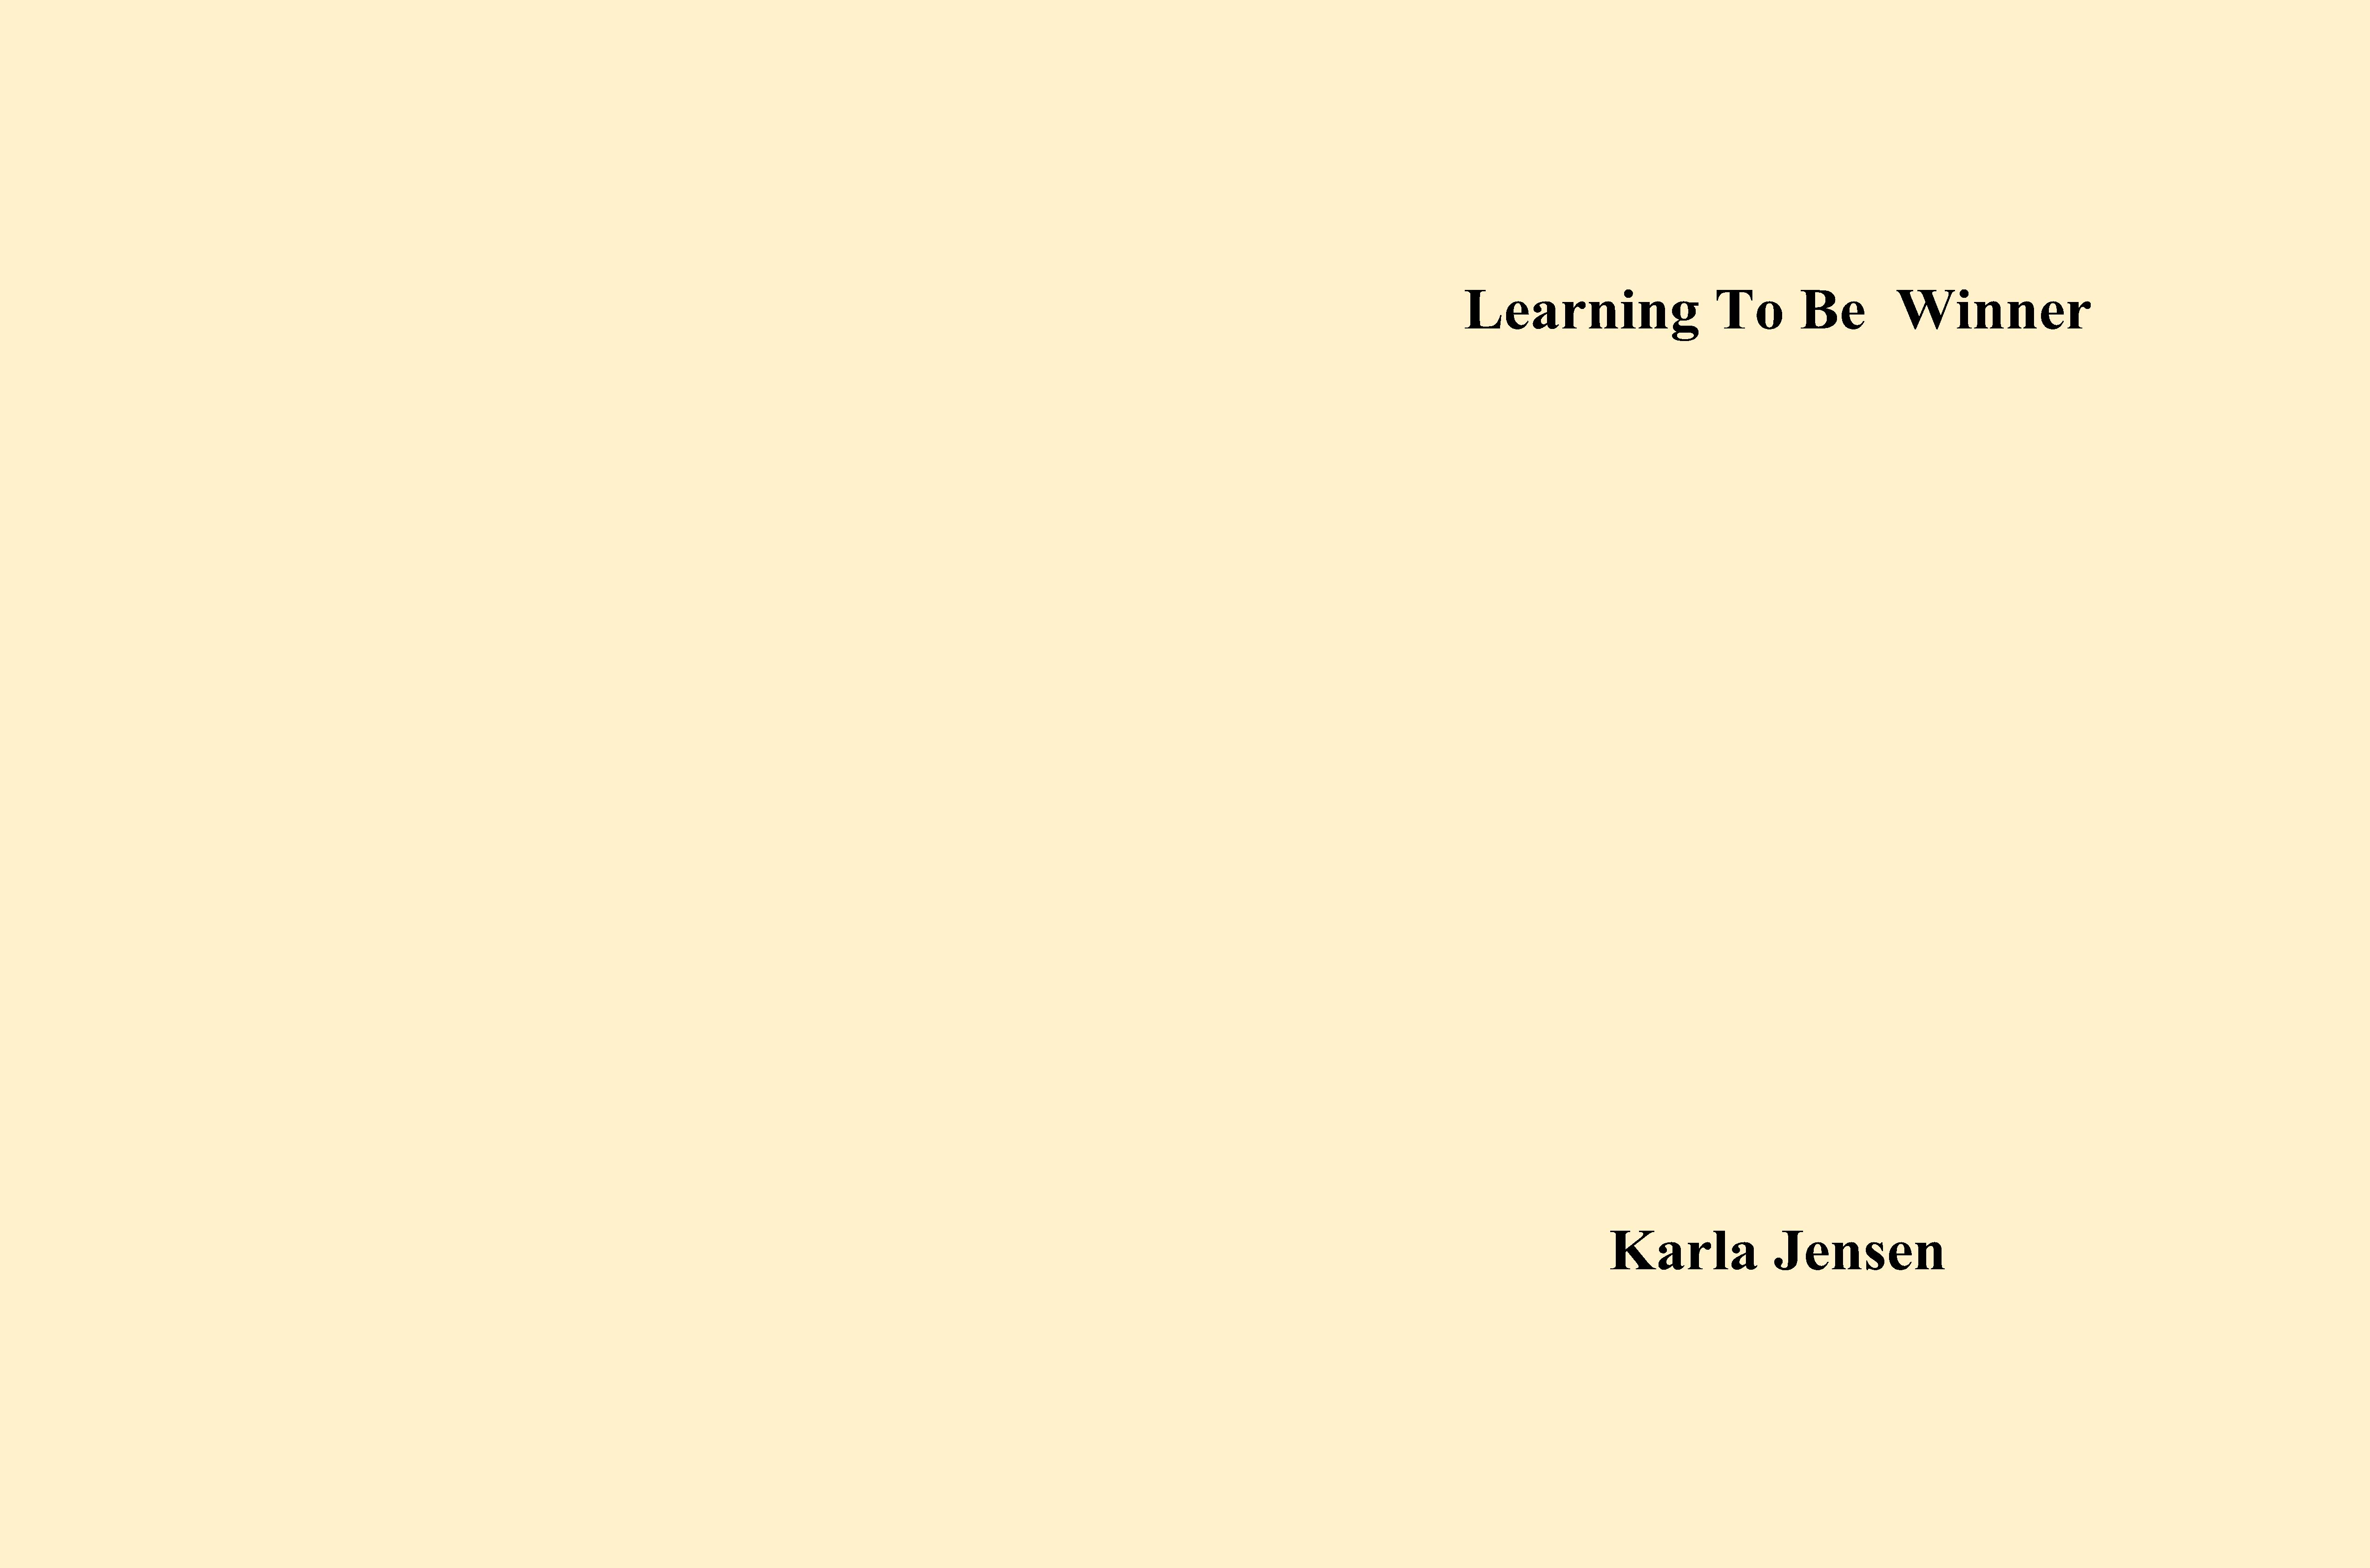 Learning To Be Winner cover image